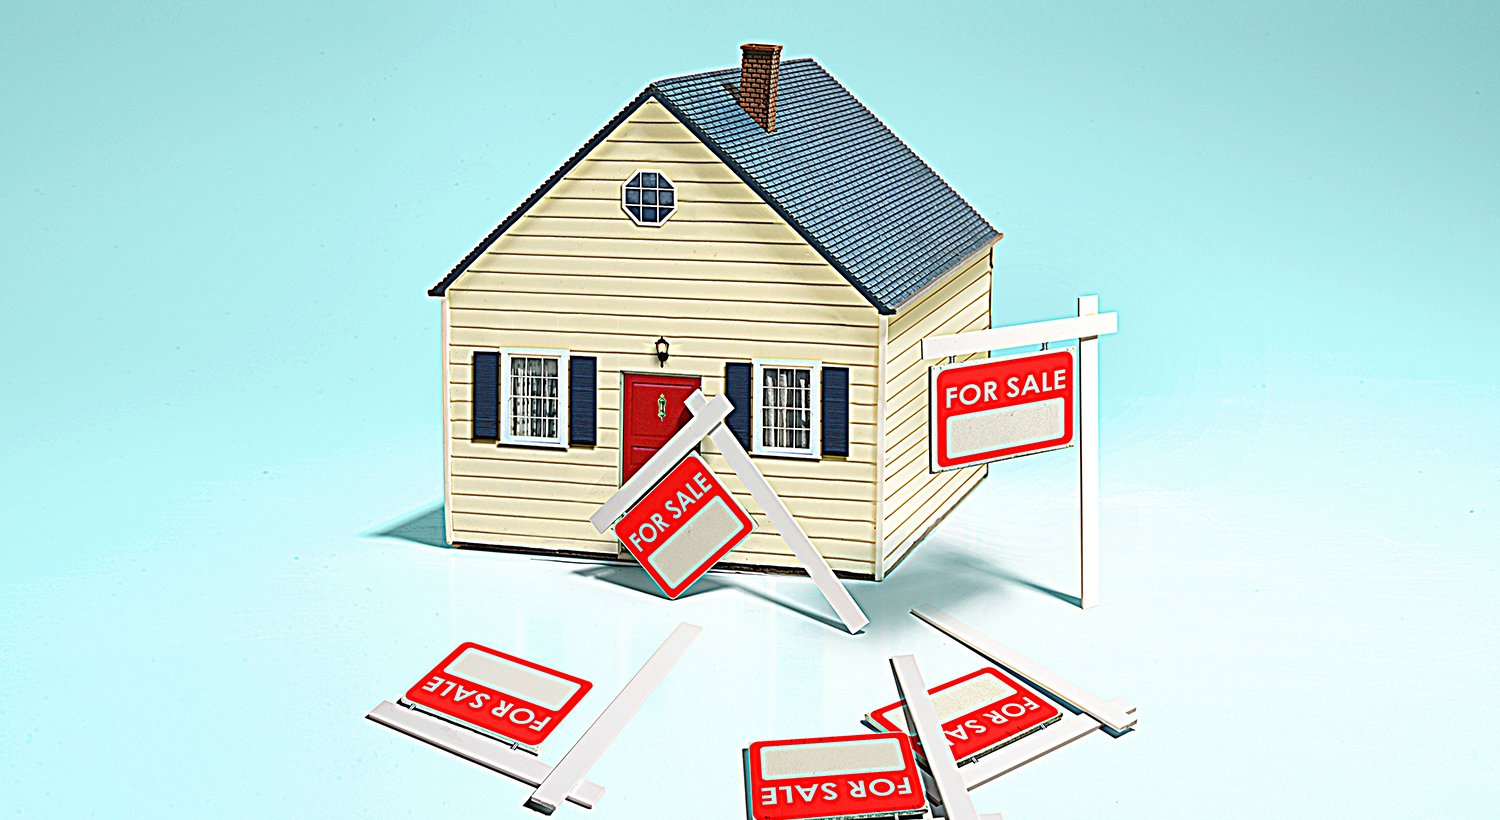 Real estate agents can enhance your marketing to get more listings